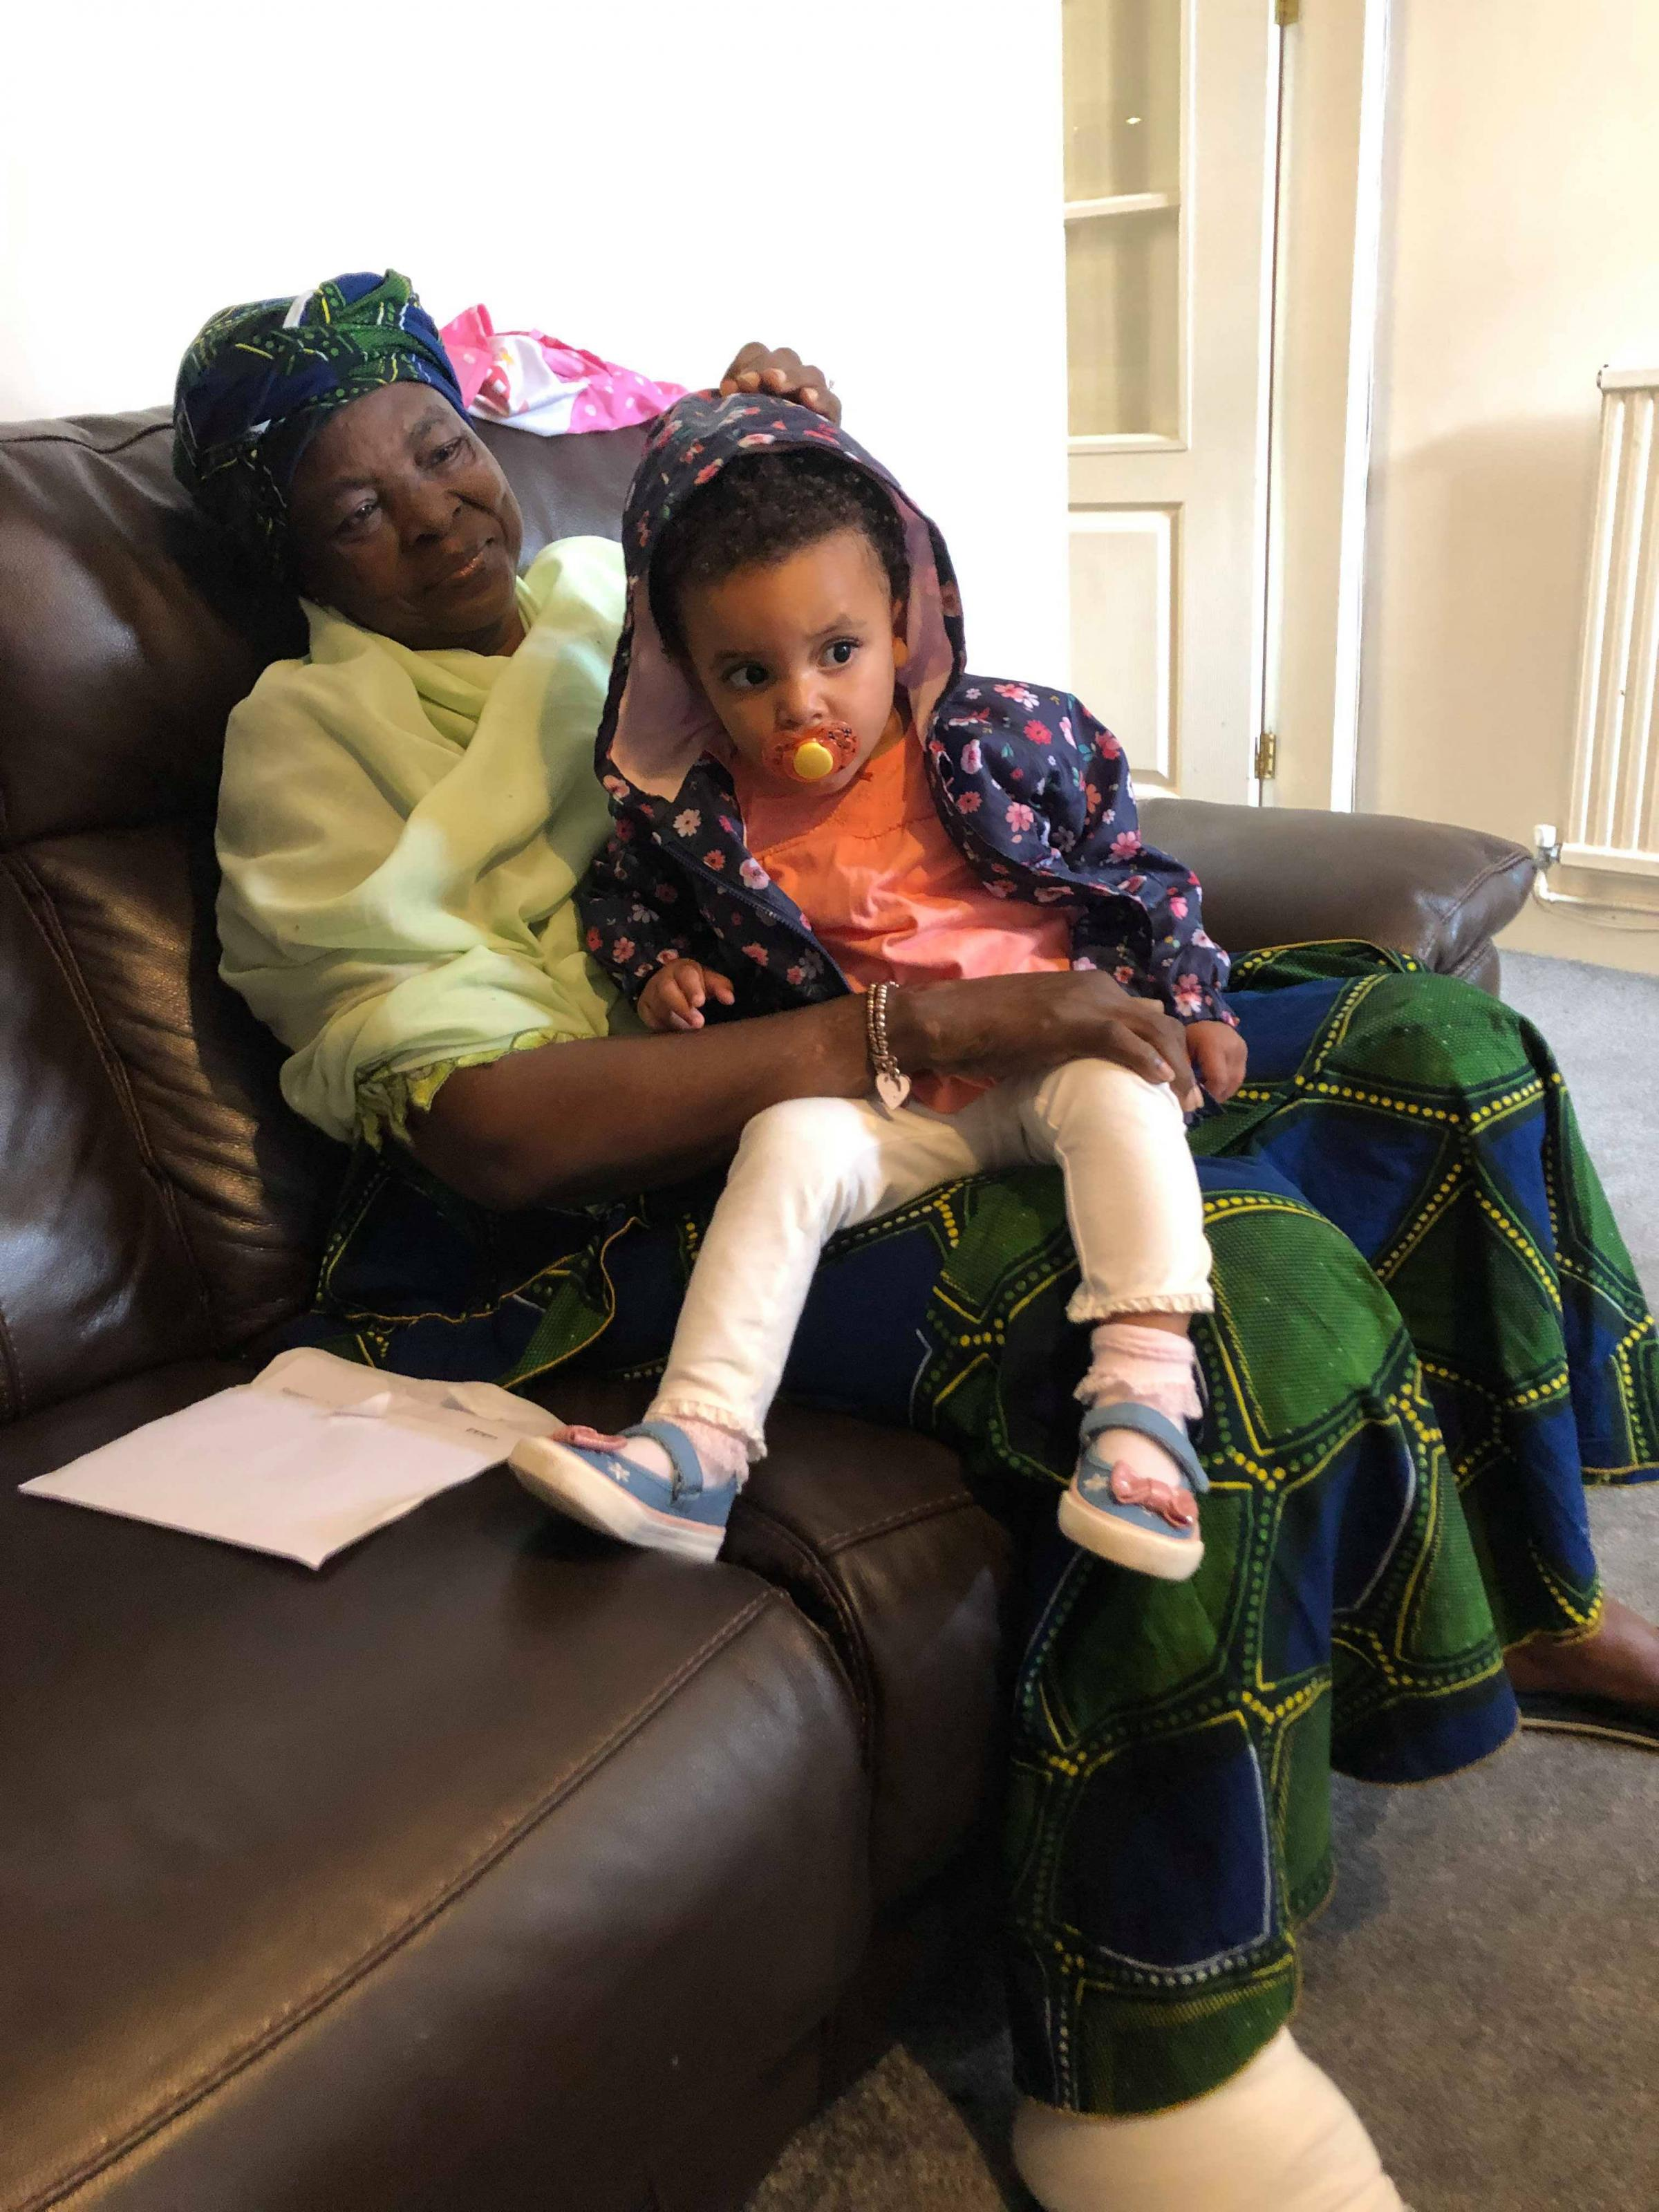 Mother's heartbreaking plea over £3,500 NHS bill while visiting granddaughter